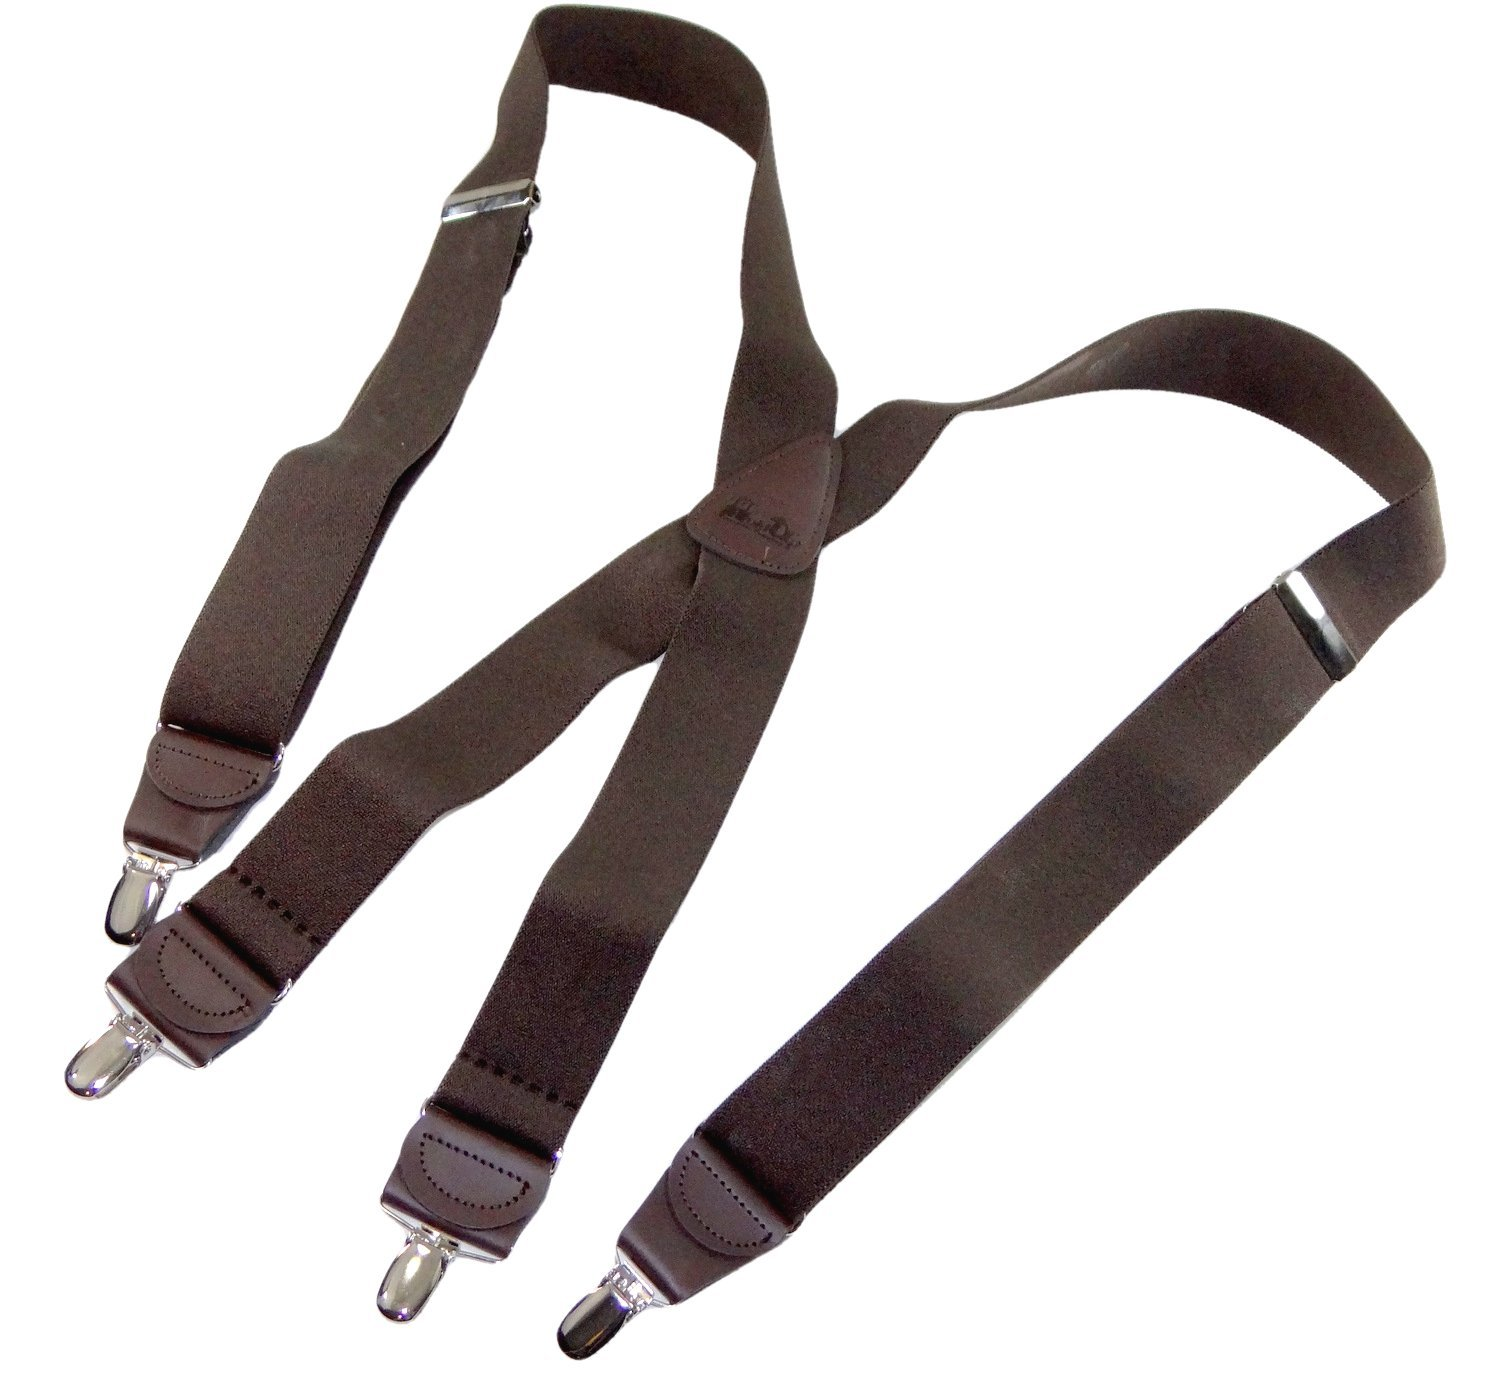 Hold-Up Dark Java Brown X-back Suspenders with Patented No-slip Silver Clips